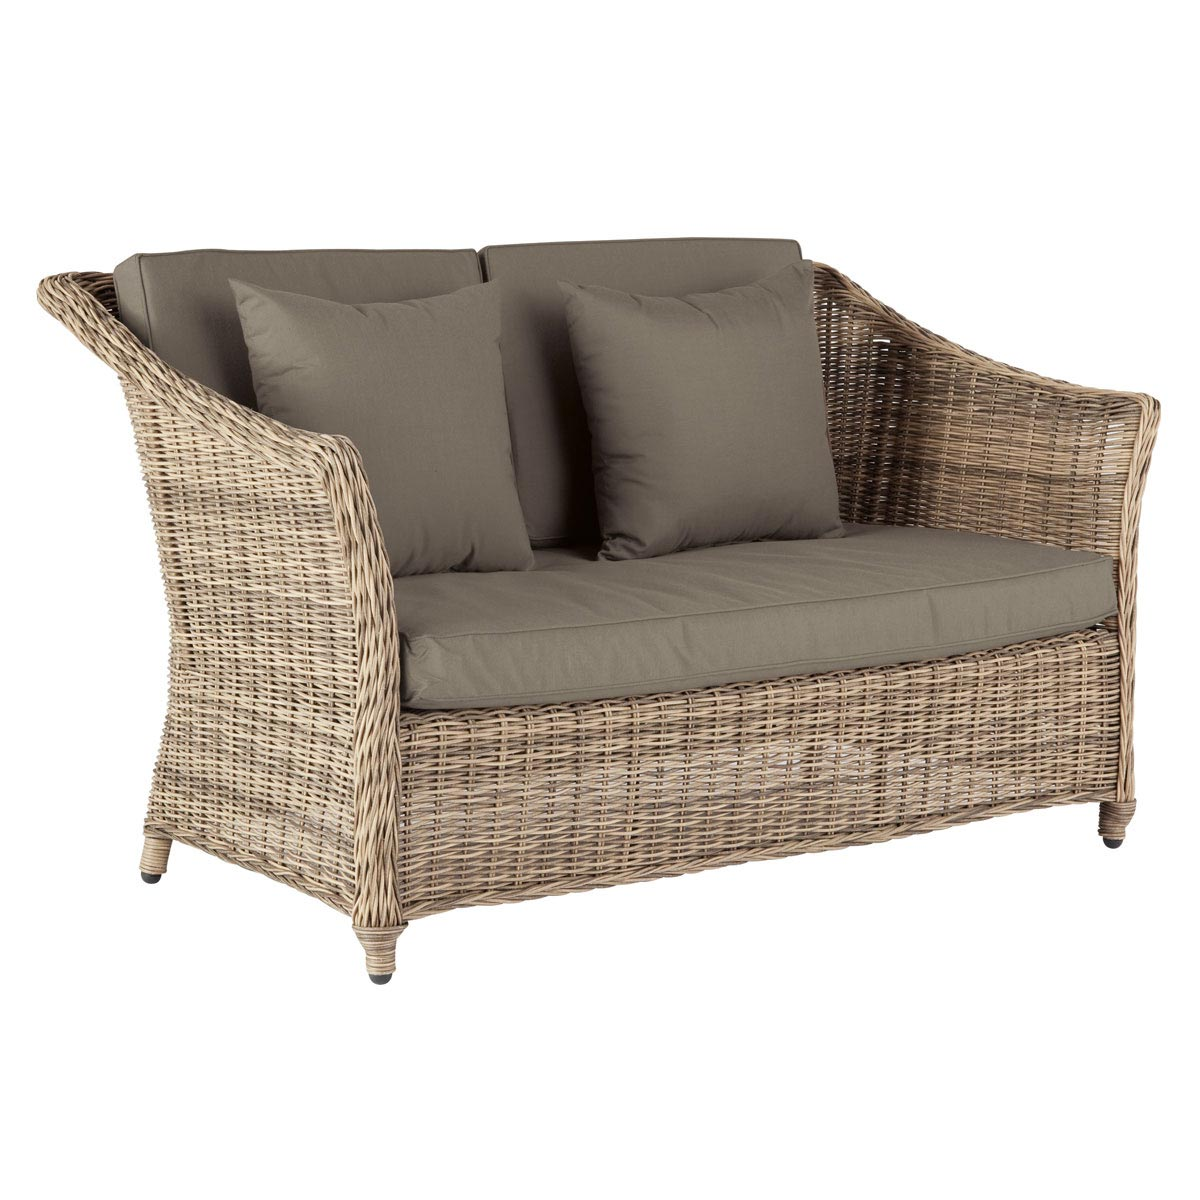 Buying the best small inexpensive loveseats couch sofa Best loveseats